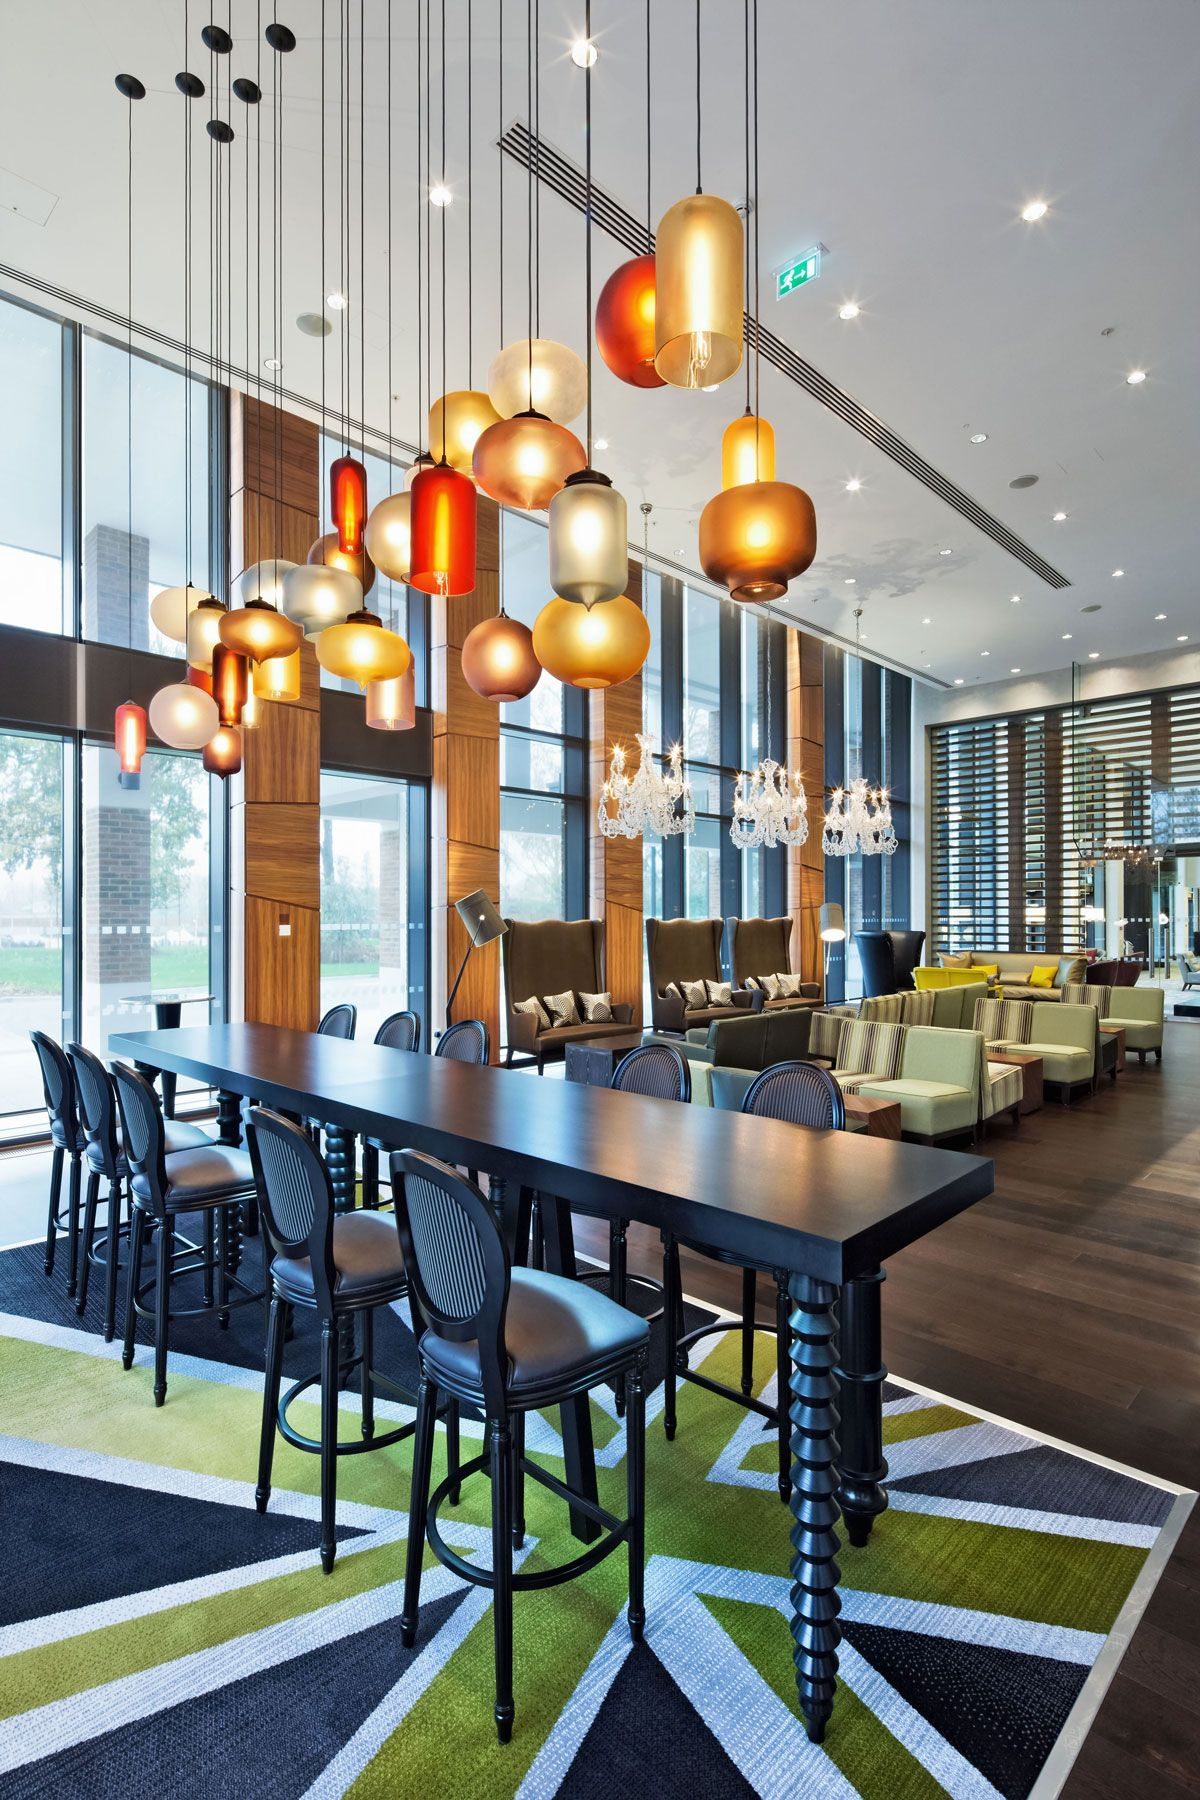 niche modern pendant lighting at the hilton at heathrow in london eclectic dining room london niche modern